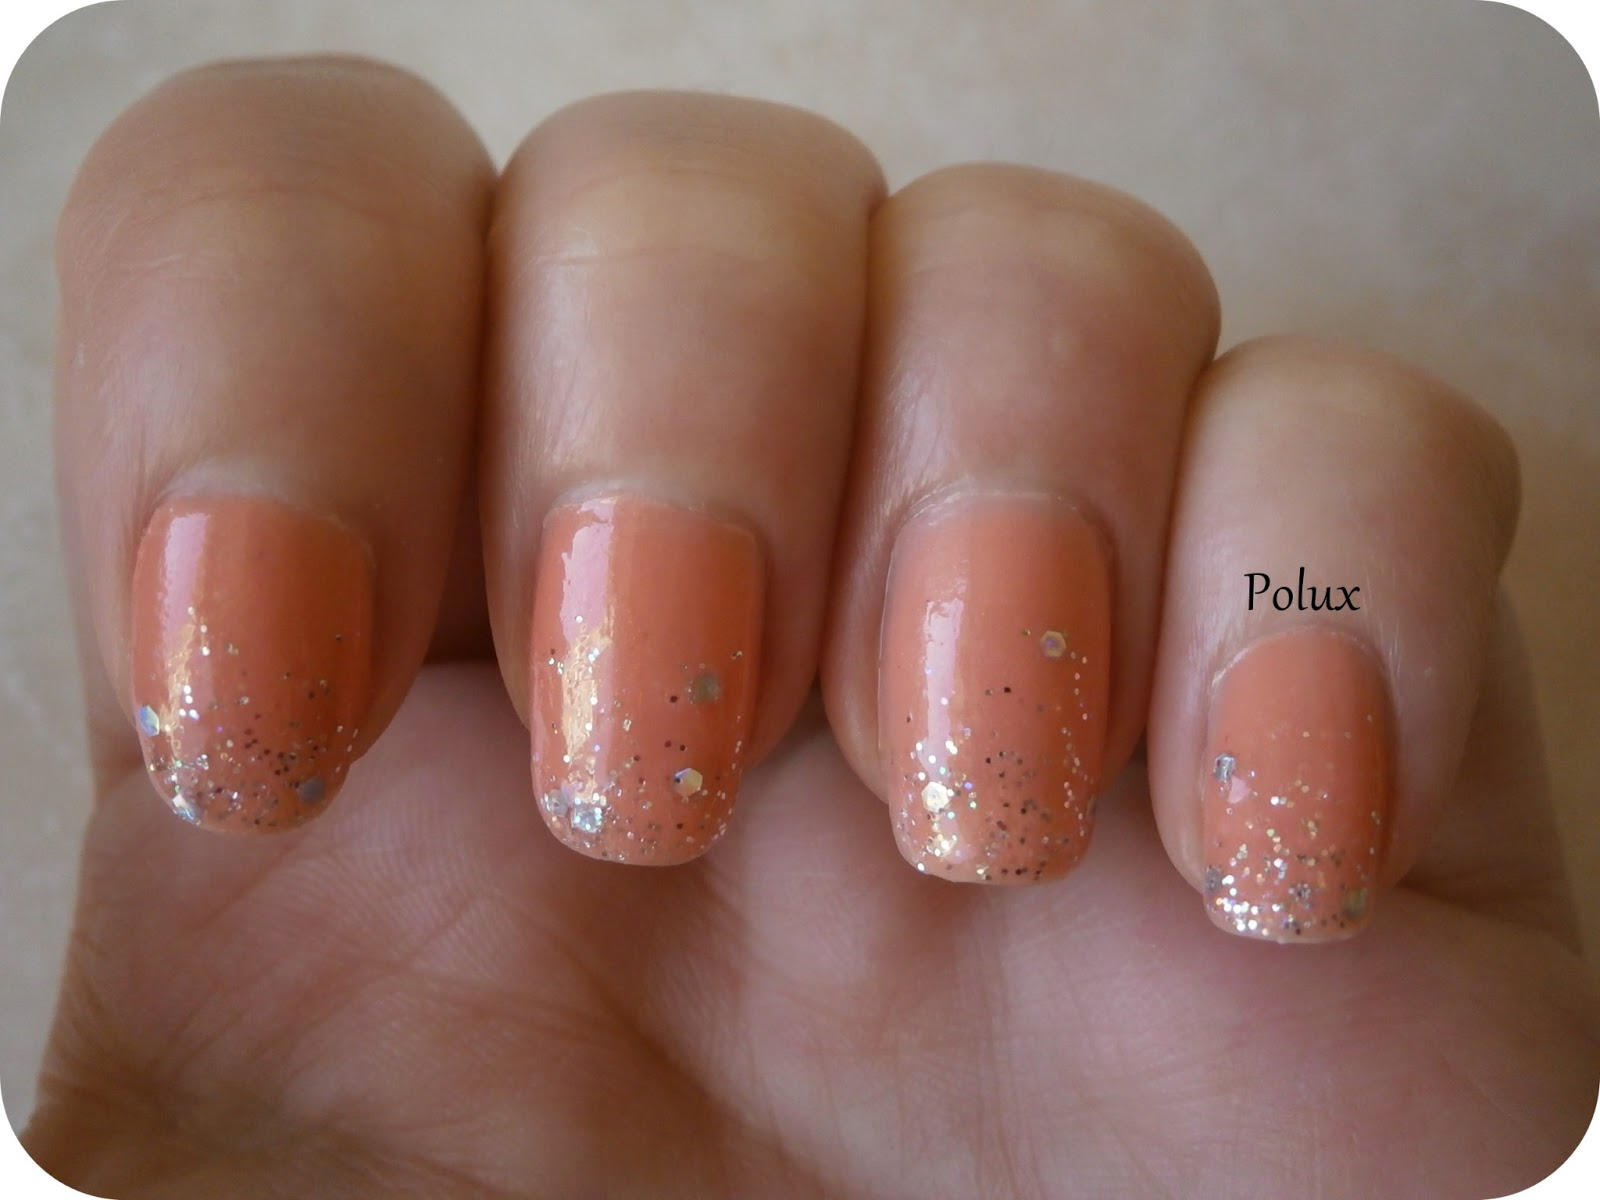 tuto d grad de paillettes nail arts corail argent et noir or les ongles enchant s de polux. Black Bedroom Furniture Sets. Home Design Ideas